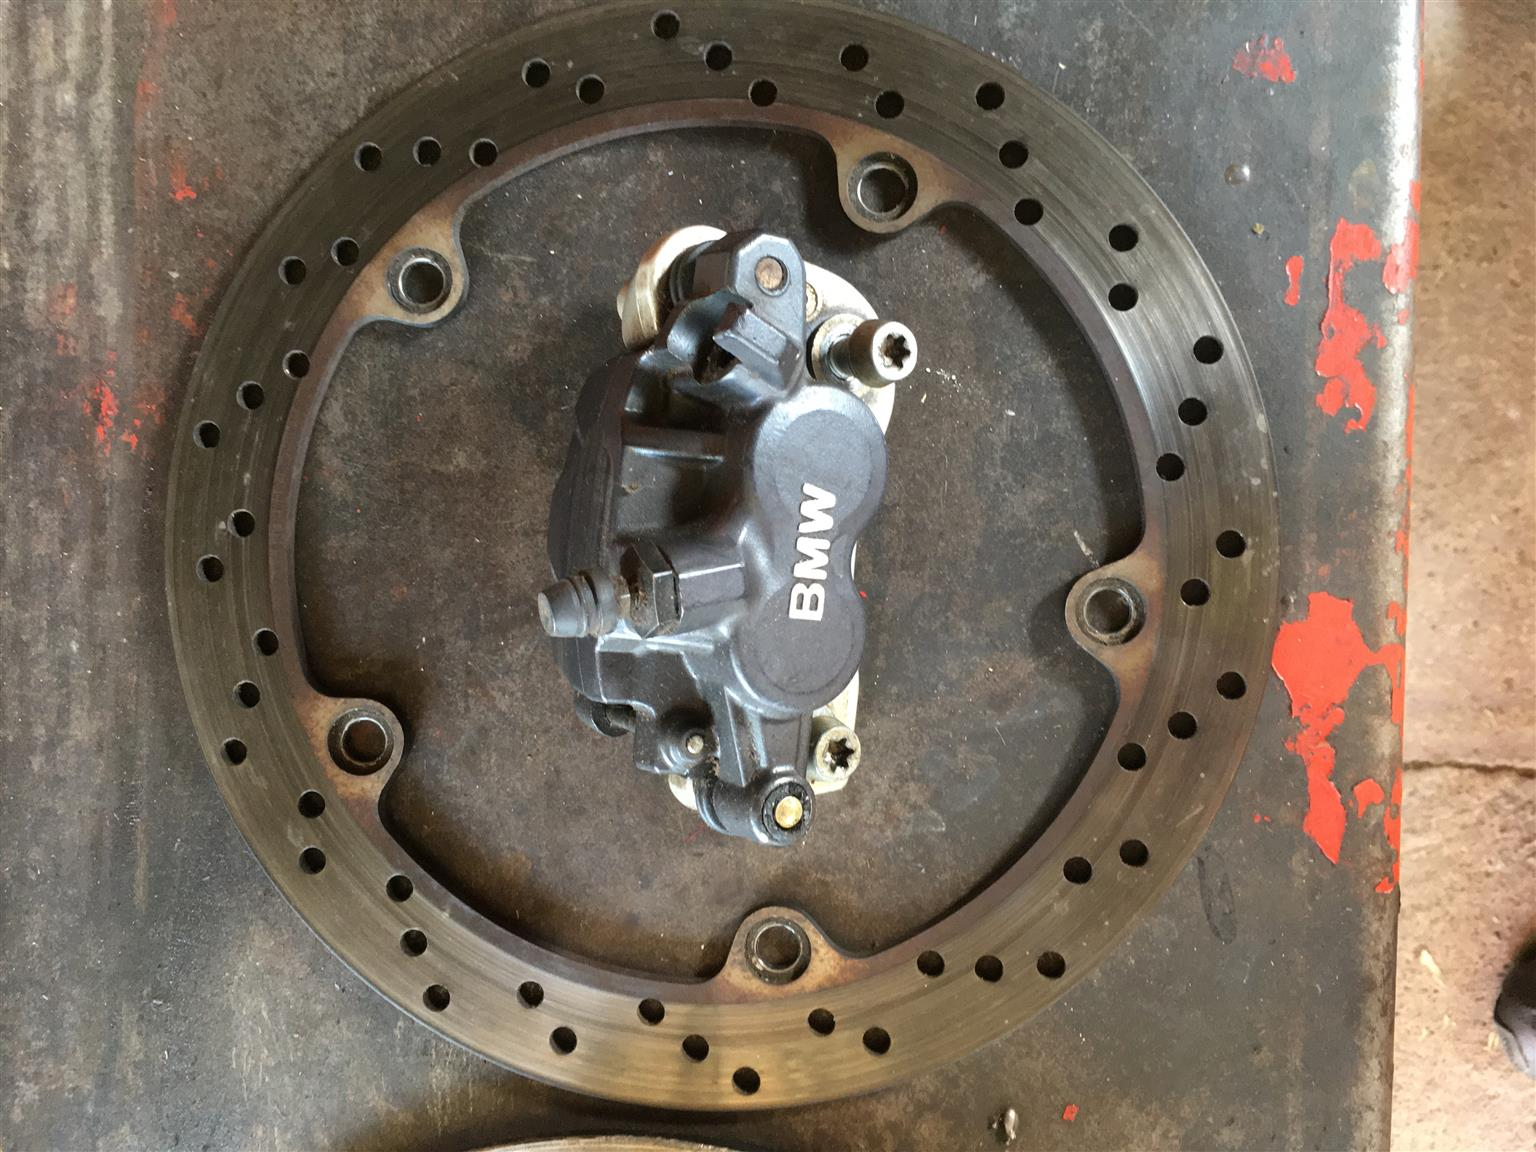 BMW R1150 GS brake discs and calipers